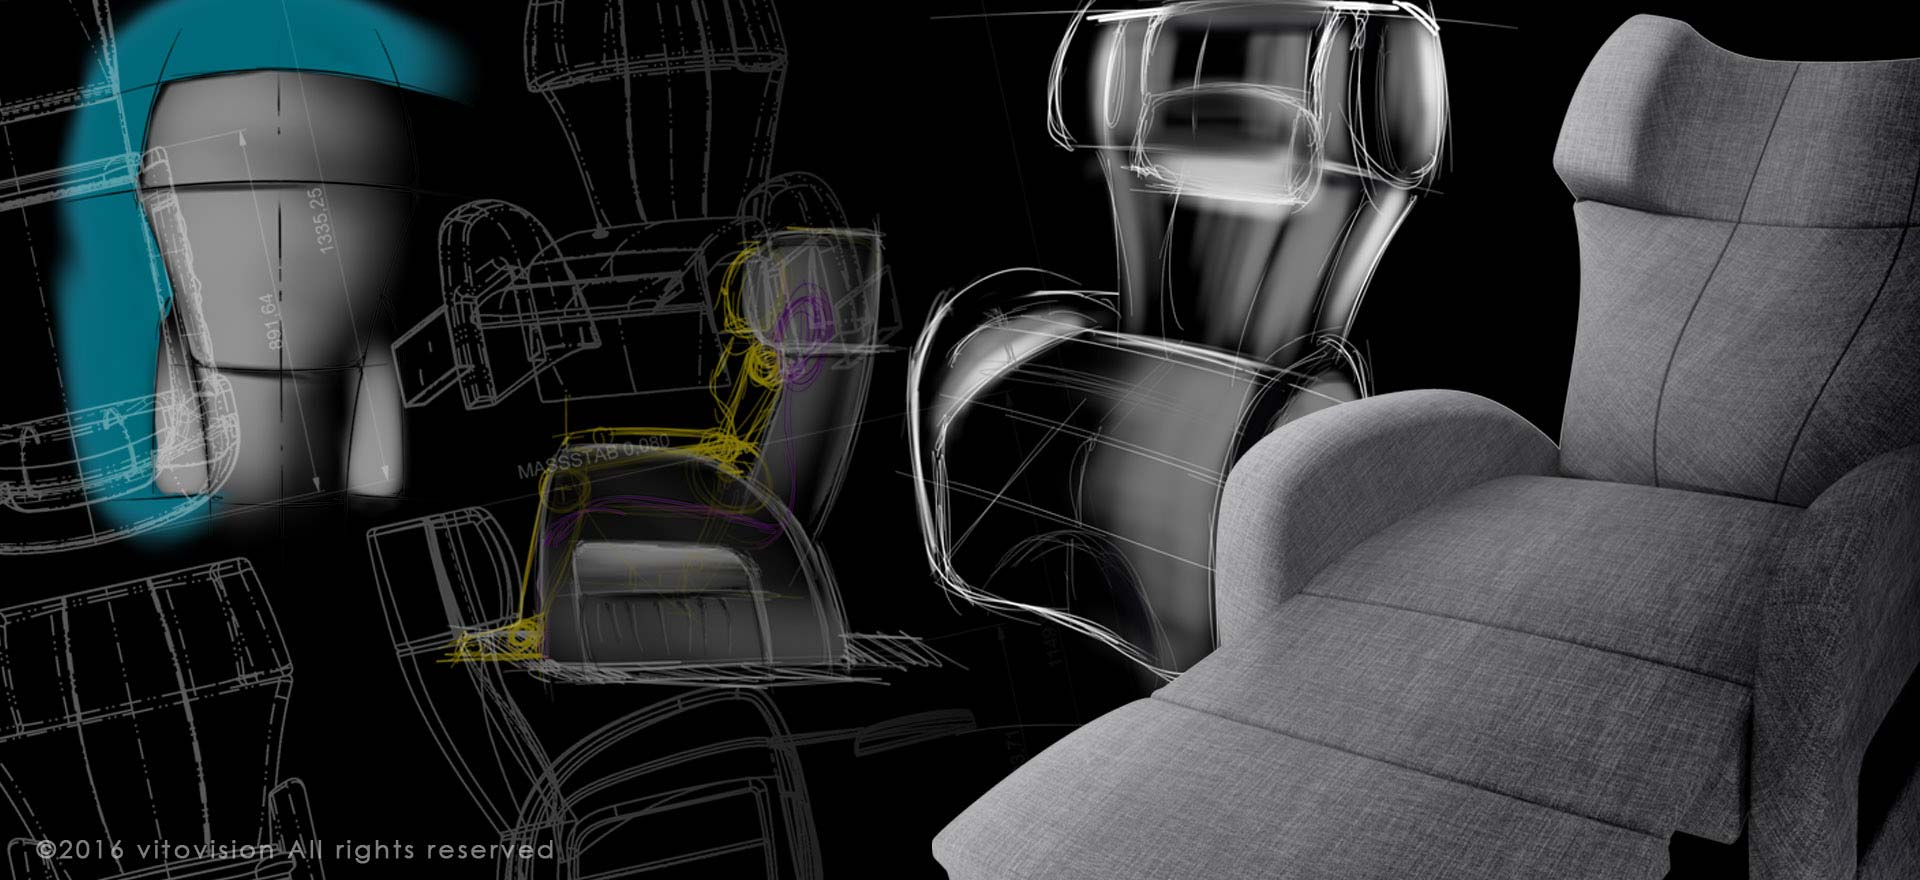 Saljol Club1 Chair Sketches by Vitovision